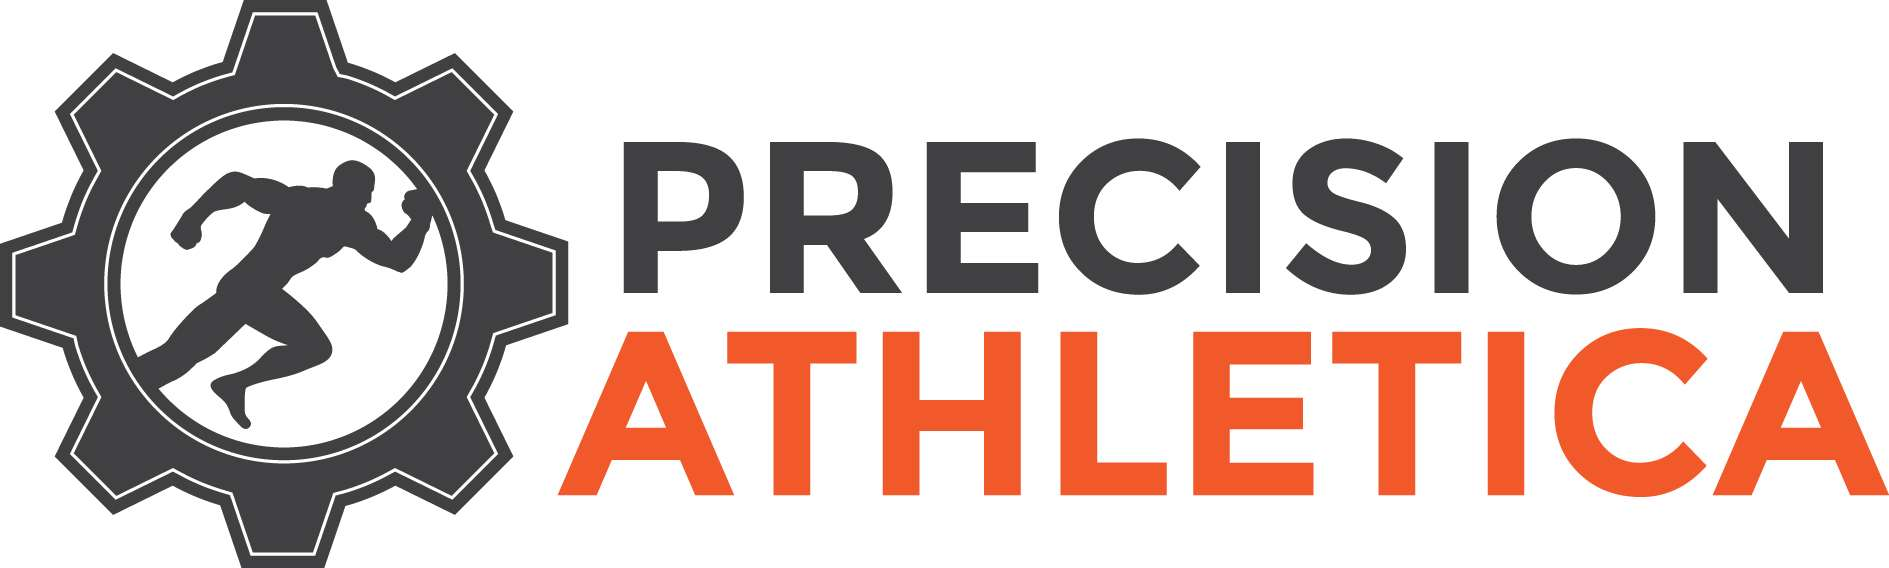 Precision Athletica logo